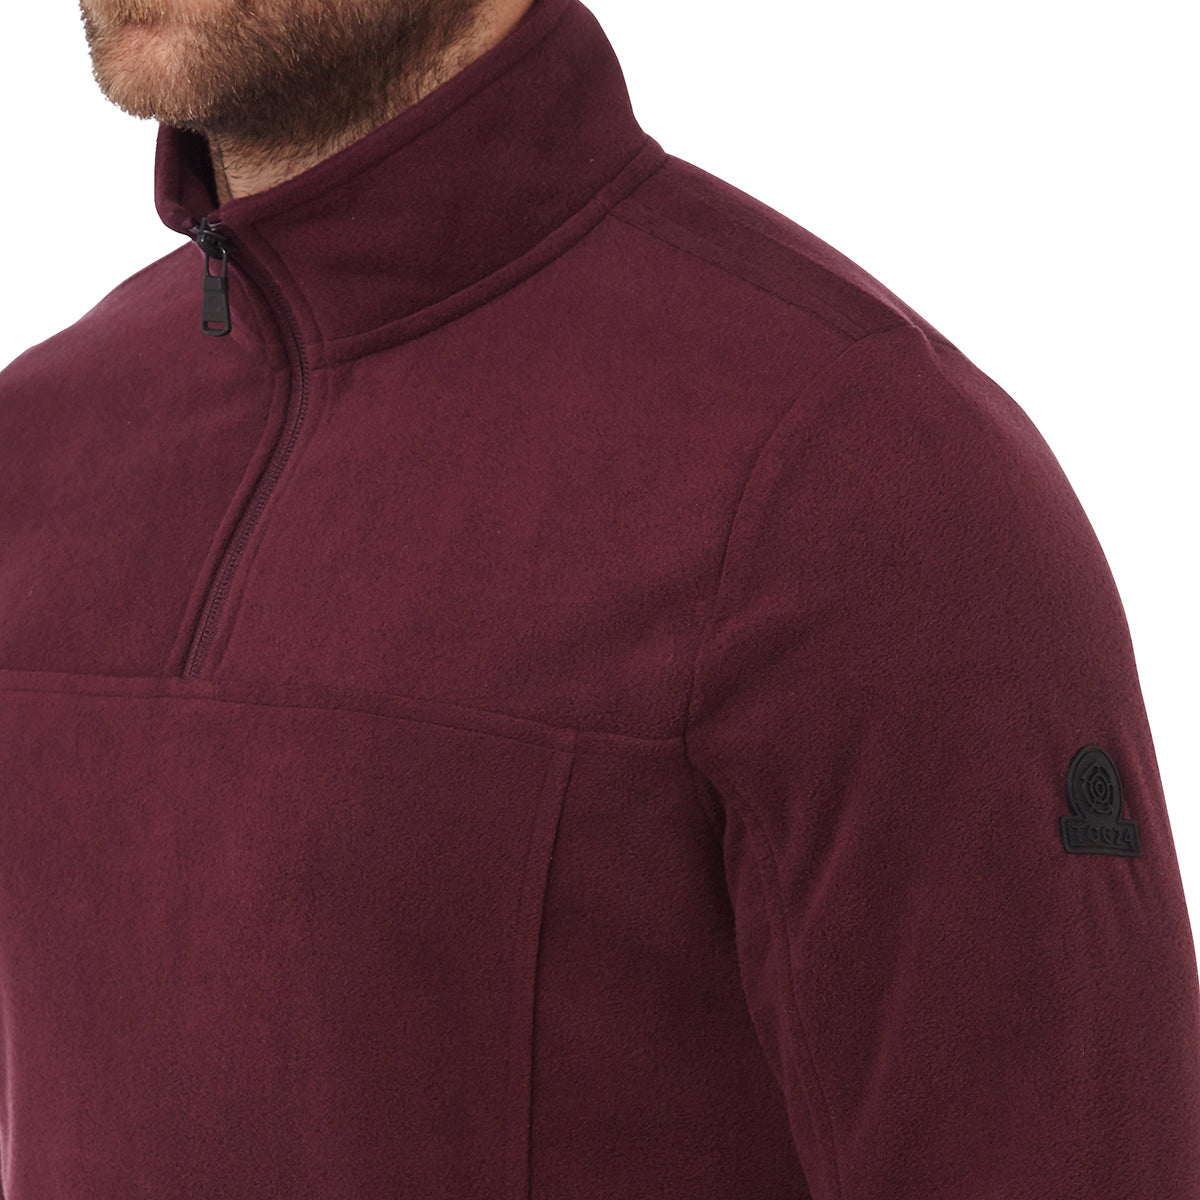 Spen Mens Microfleece Zipneck - Deep Port image 4